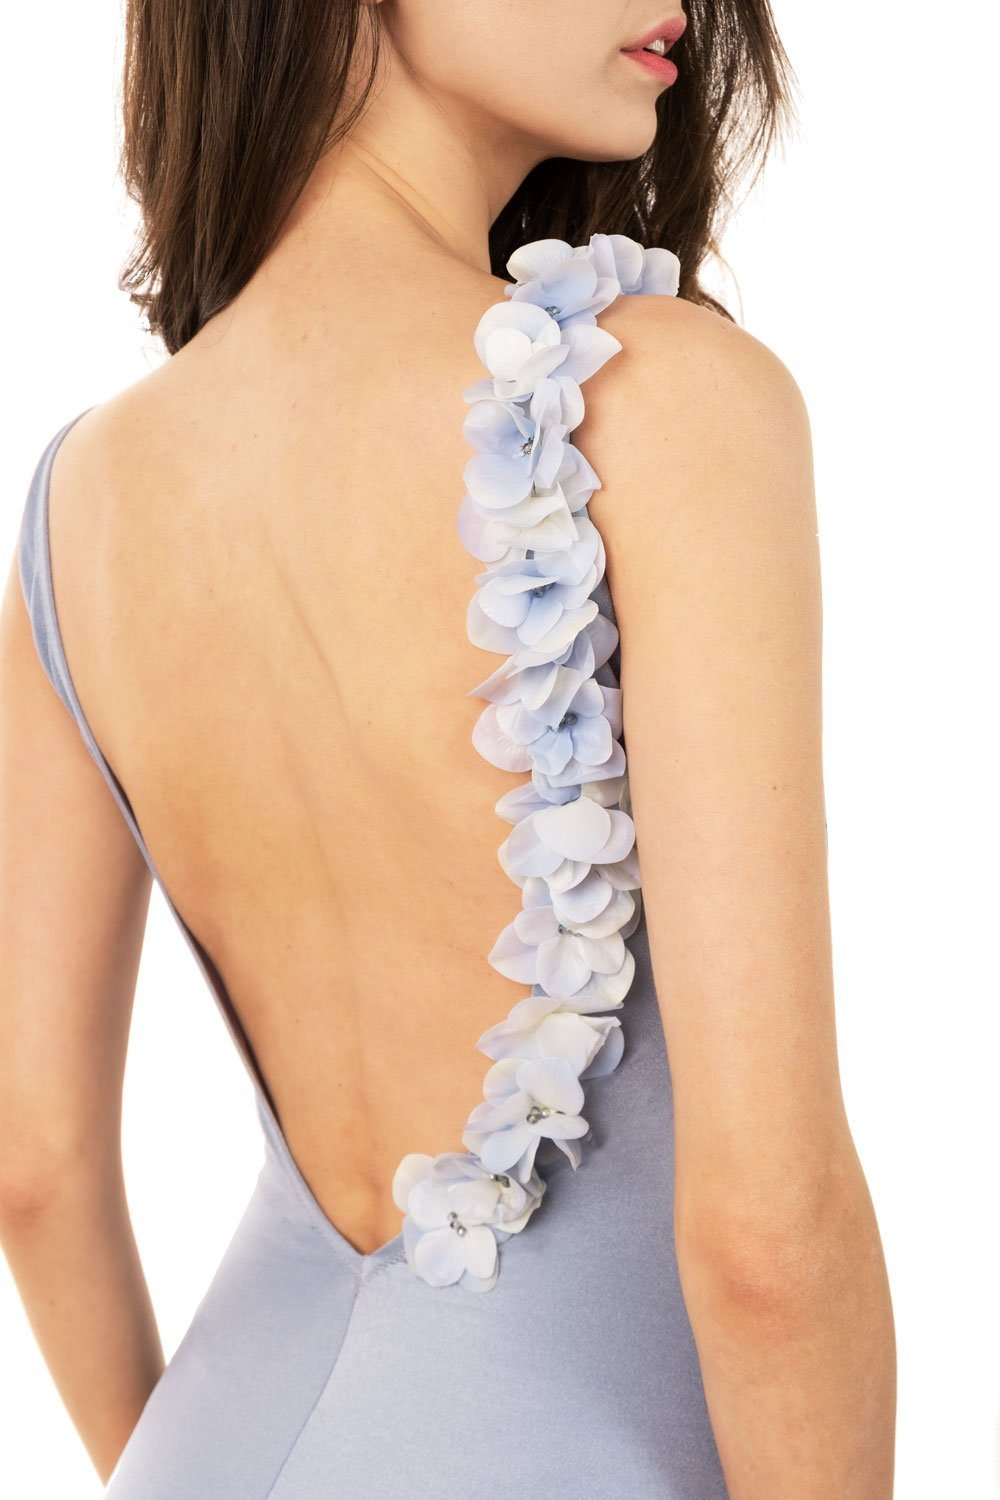 Designer swimsuit, one-piece, silver, gray, blue, with flowers, with beads, piecework, shiny, deep cut on back, Keosme, don't push through shoulders, a swimsuit with flowers, one-piece, tank, monokini, non-foam, unpadded cups, wide straps, gentle, minimalistic, luxurious, refined, unique, elegant